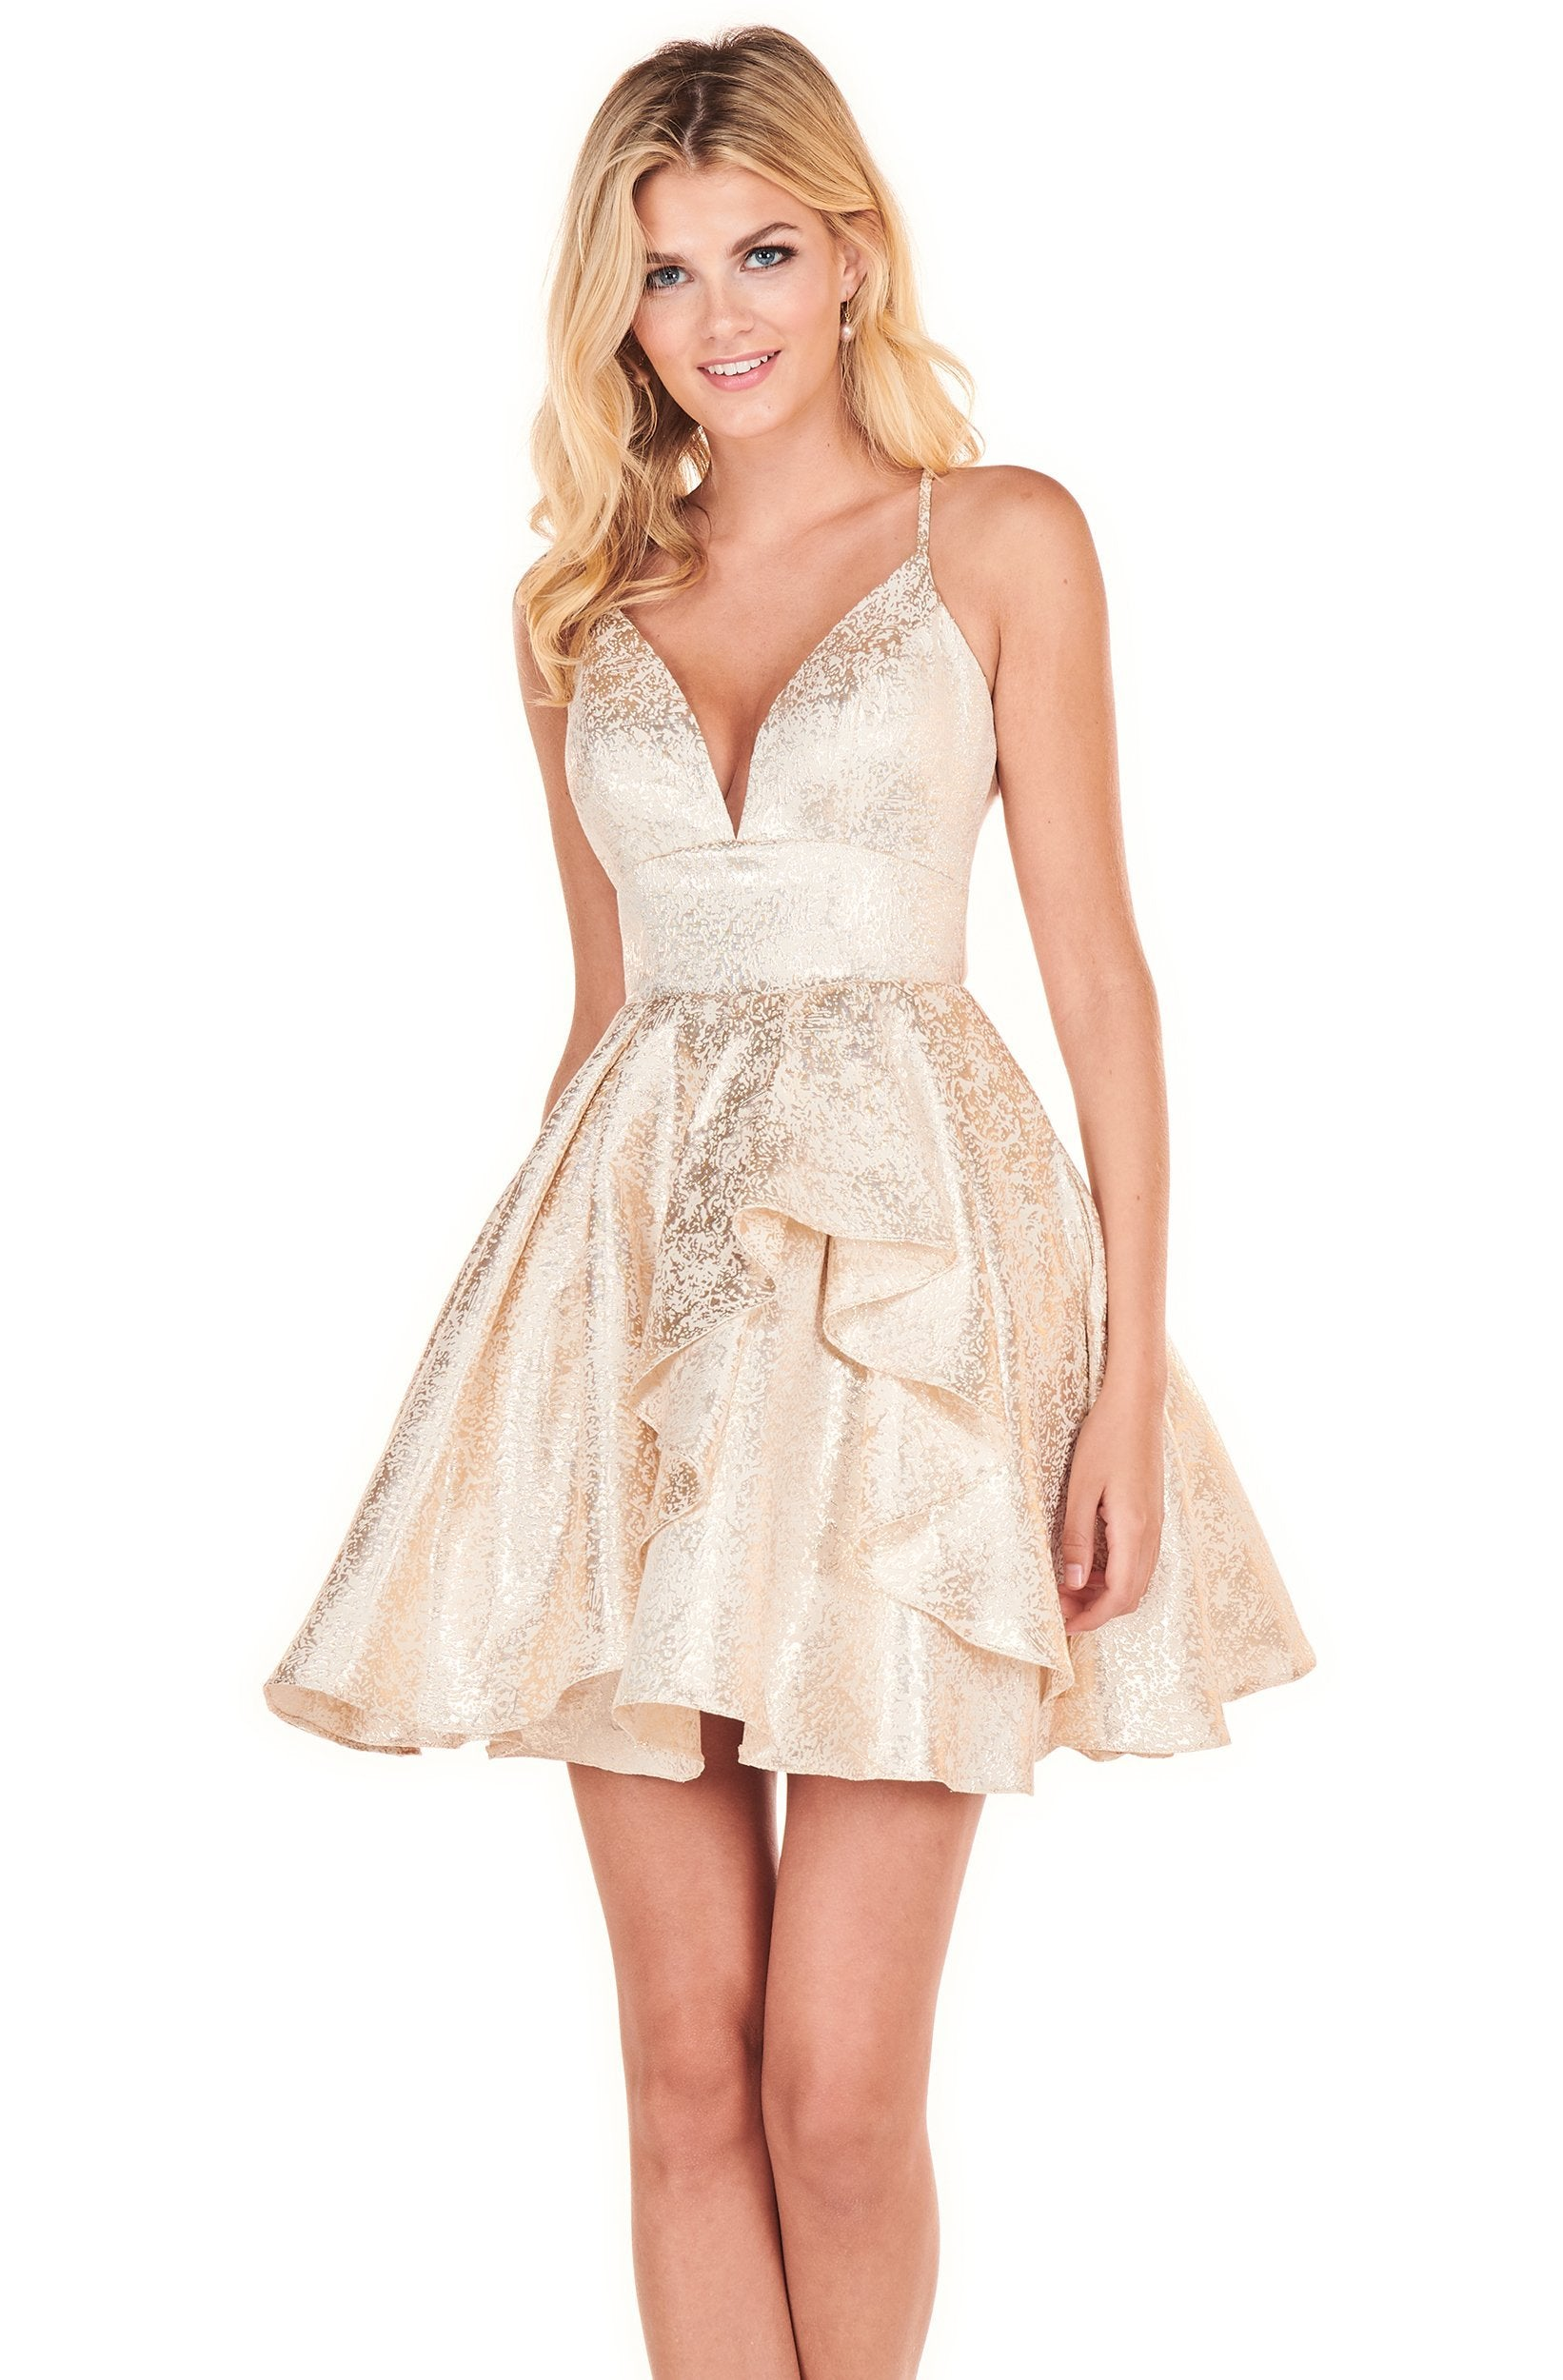 Rachel Allan Shorts - 4070 Sweetheart Ruffle A-Line Short Dress In Gold